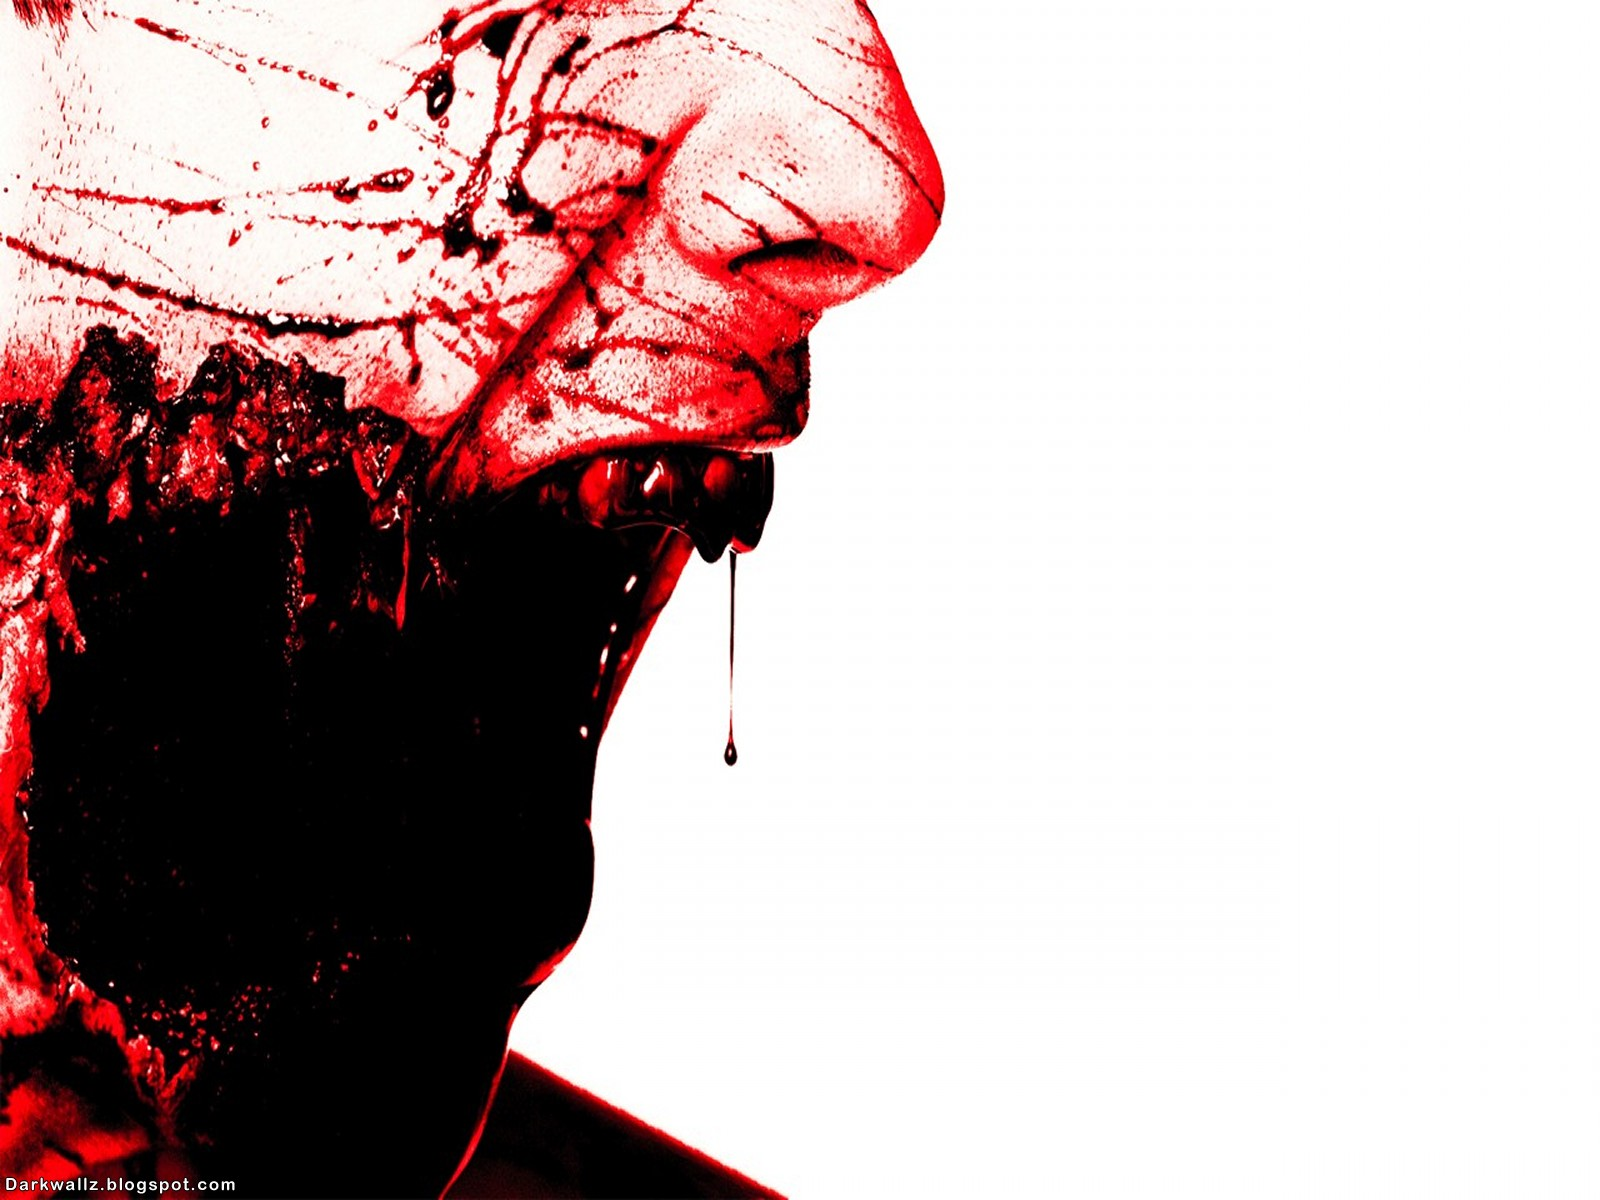 blood wallpapers 15 dark wallpapers high quality black